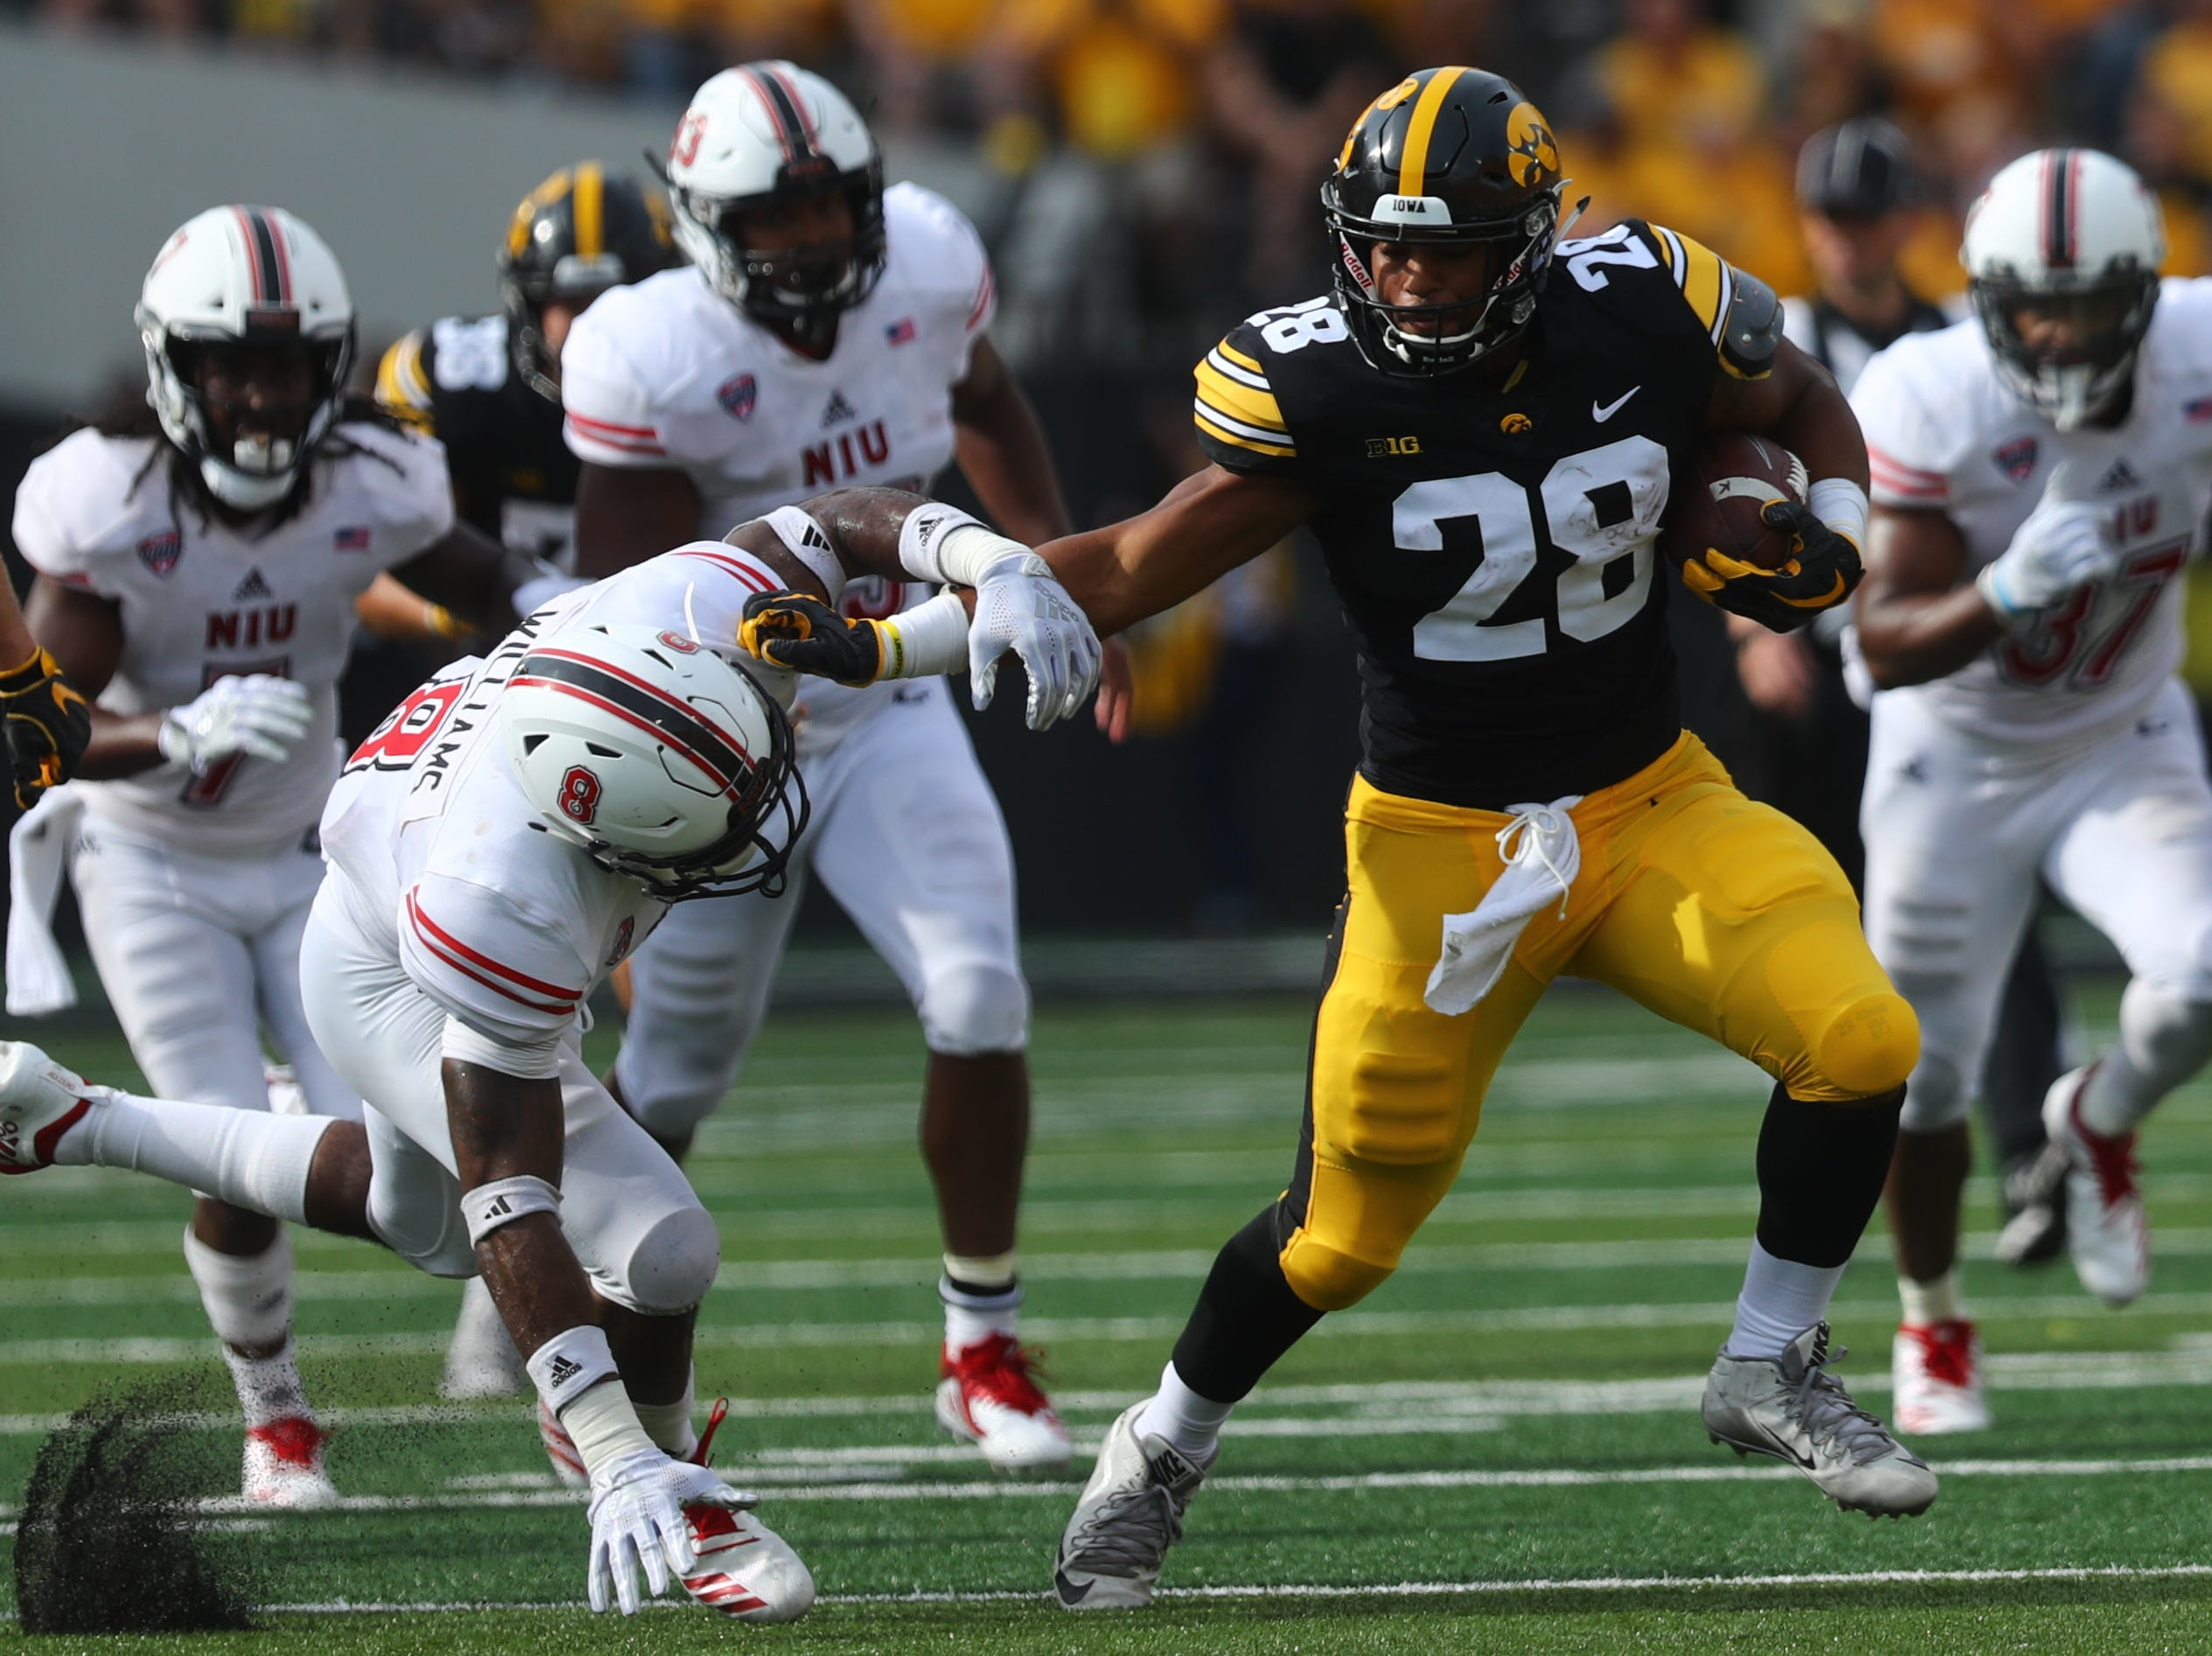 Iowa's Toren Young pushes away Northern Illinois' Mykelti Williams as he runs down field during their game at Kinnick Stadium on Satuday, Sept. 1, 2018.